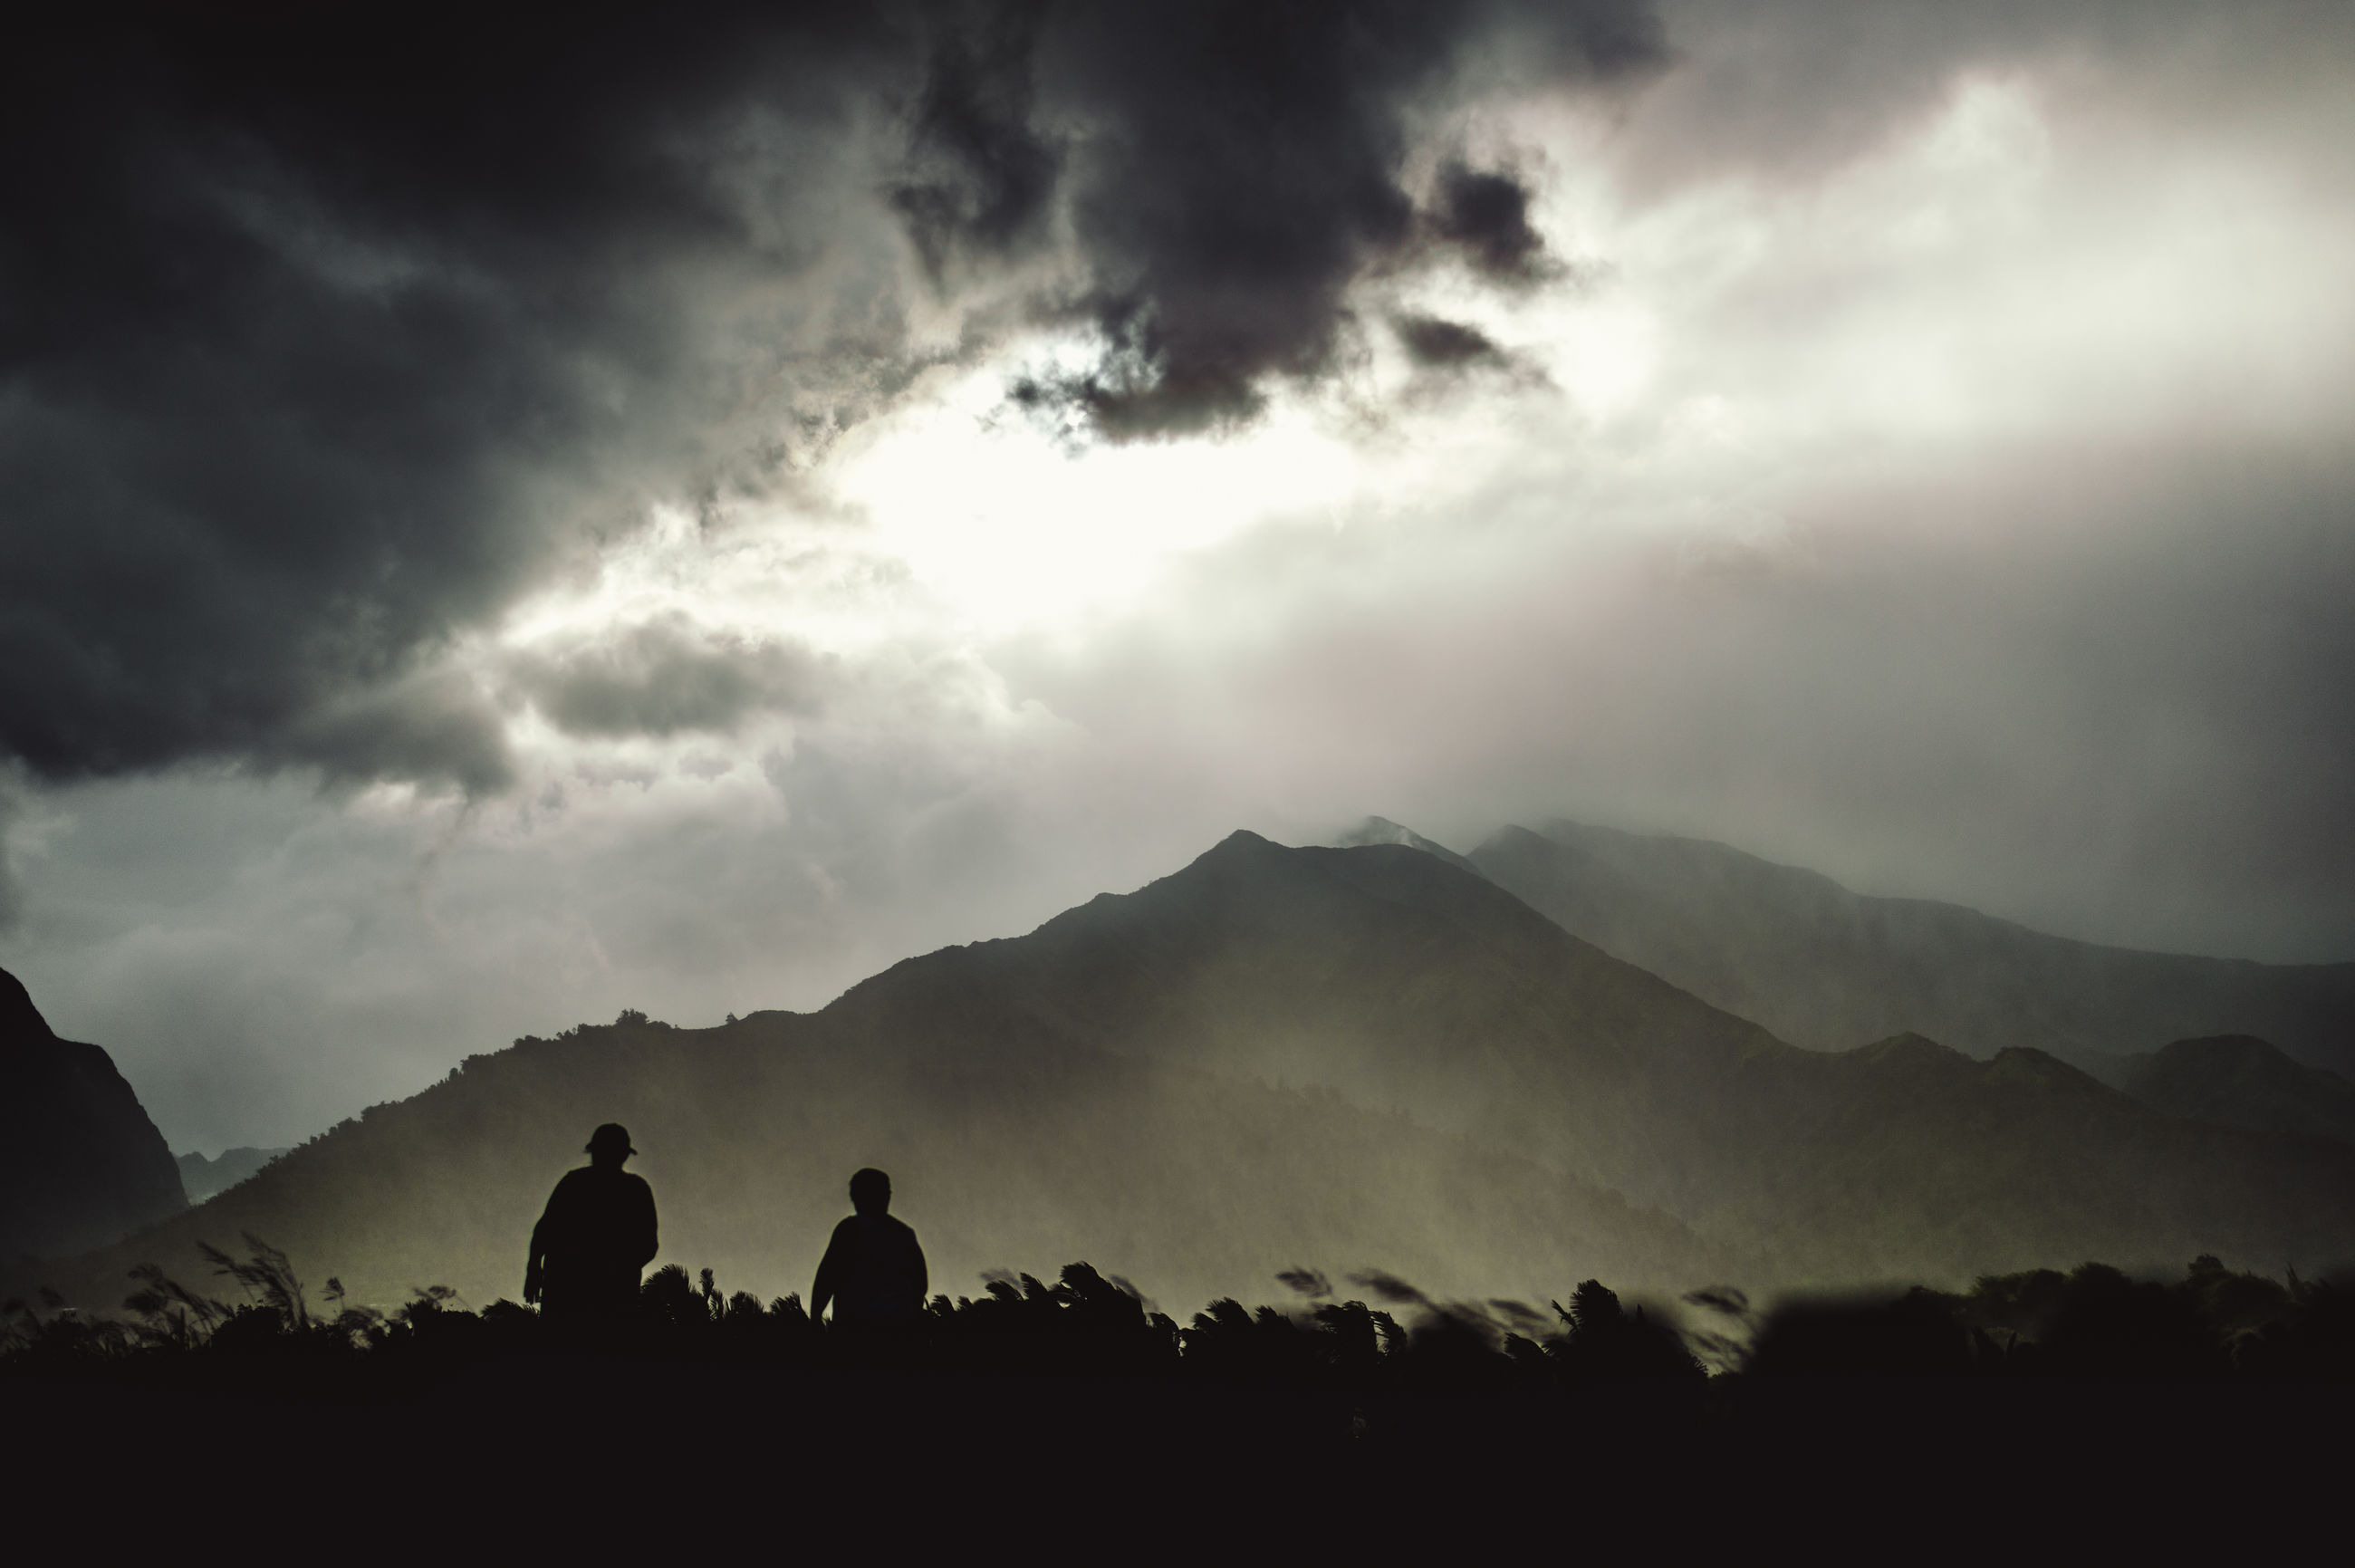 mountain, silhouette, tranquil scene, scenics, mountain range, sky, tranquility, beauty in nature, landscape, cloud - sky, men, nature, lifestyles, leisure activity, non-urban scene, person, idyllic, weather, cloudy